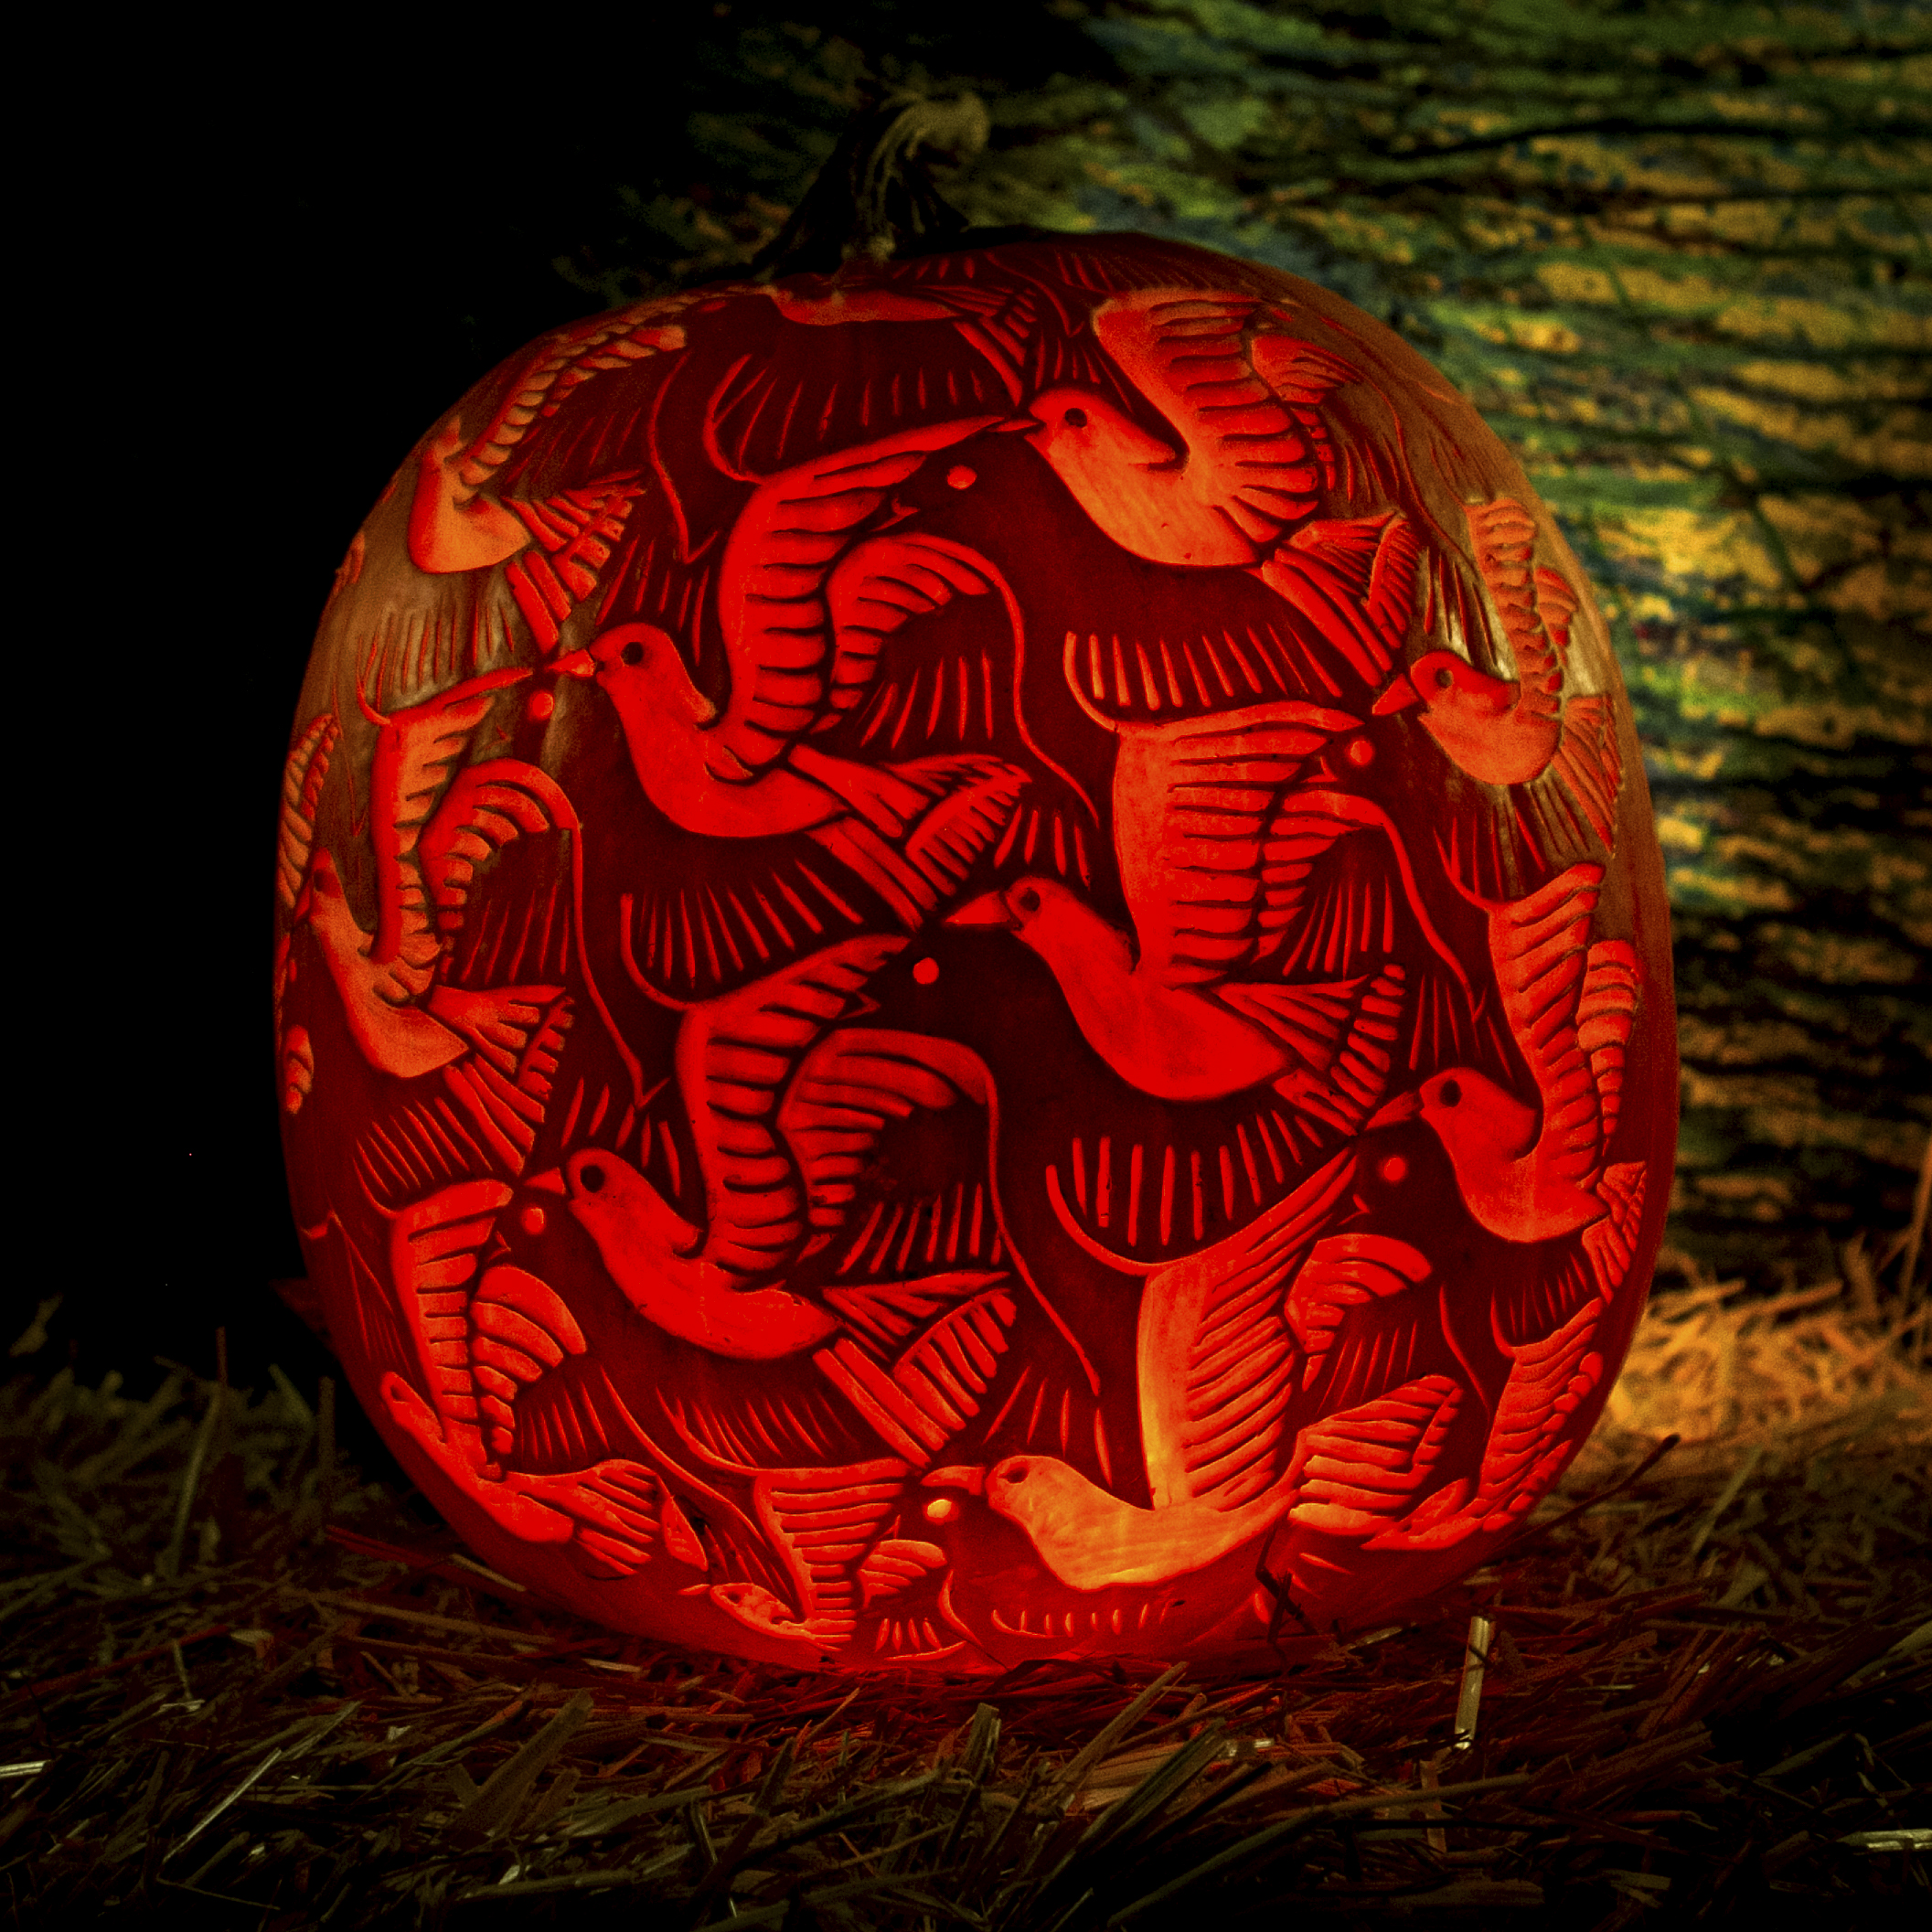 a pumpkin with intricate dove carving